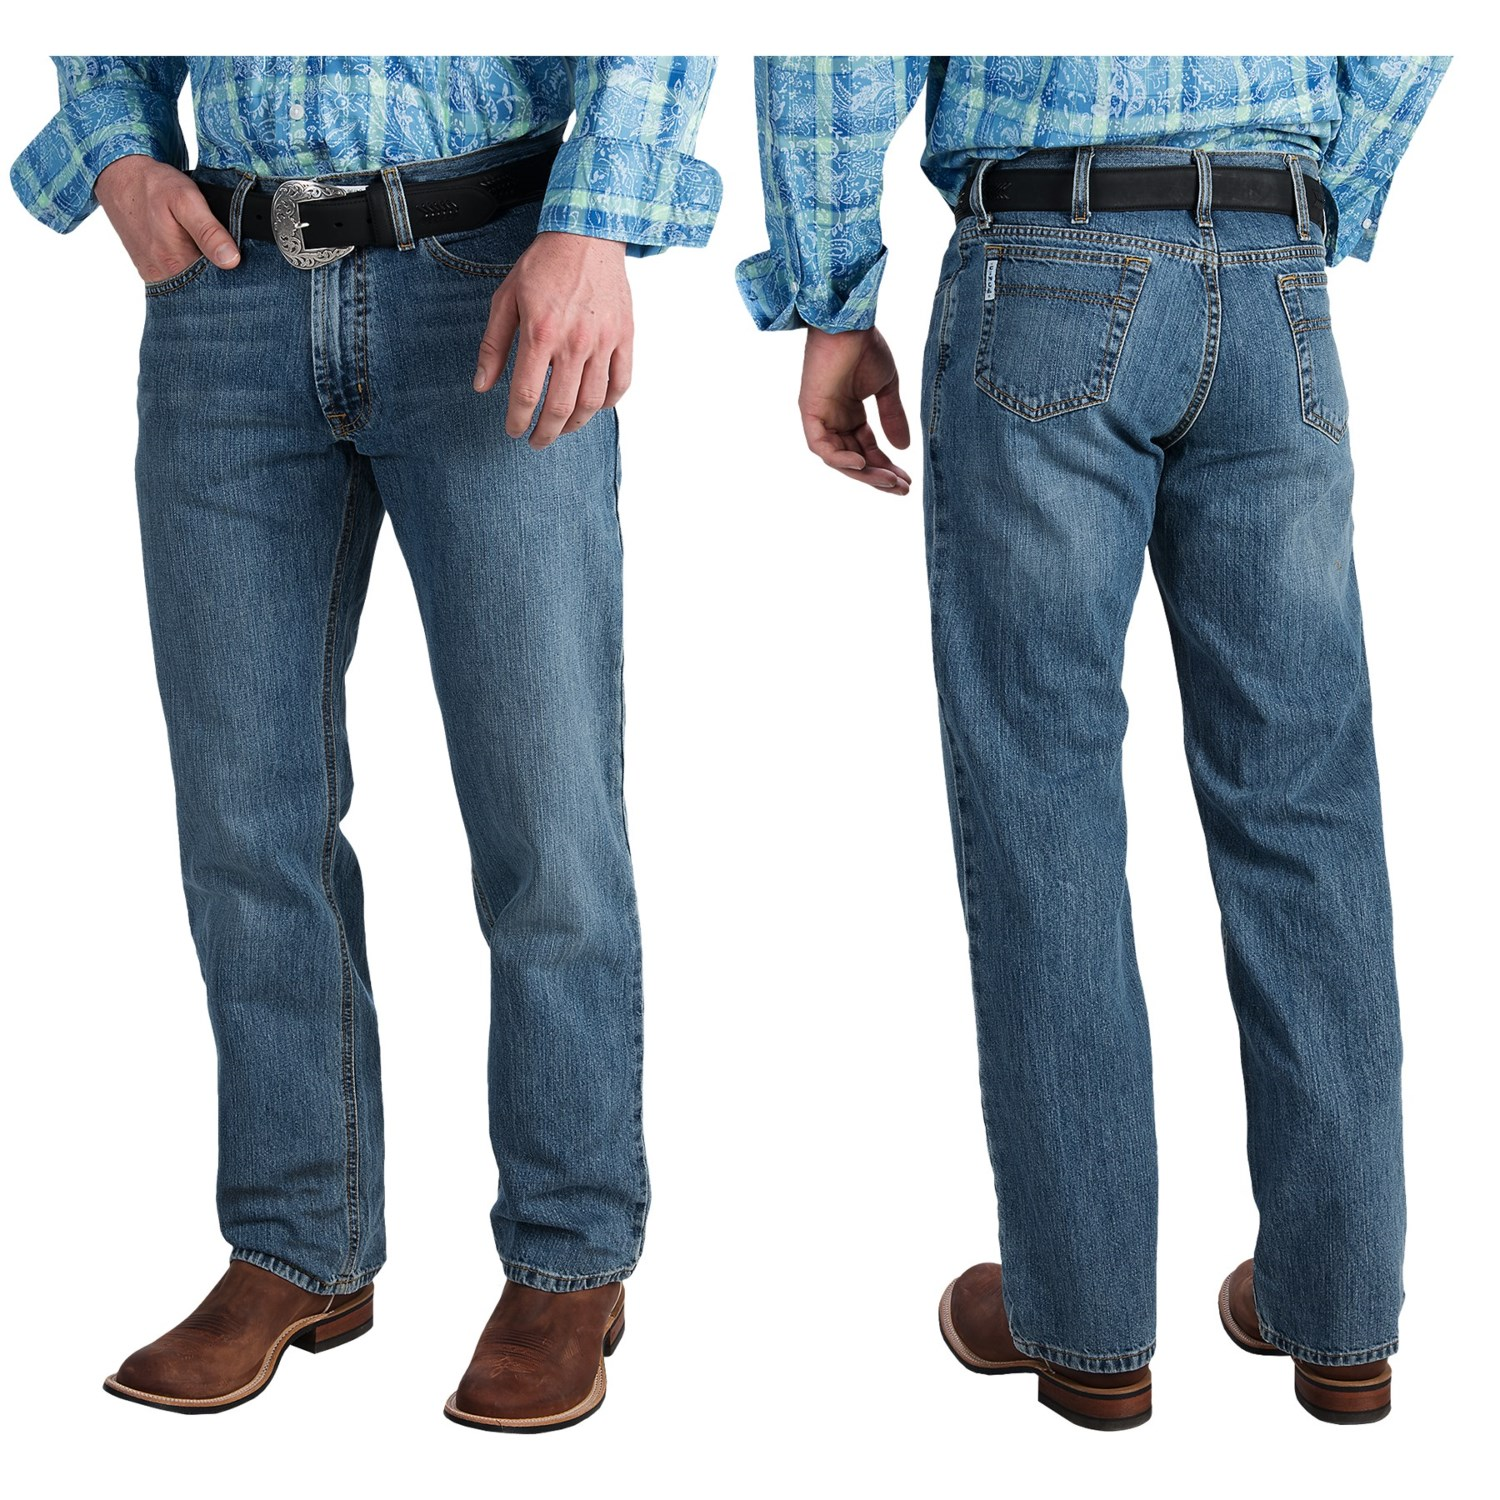 Cinch White Label Jeans For Men Save 44